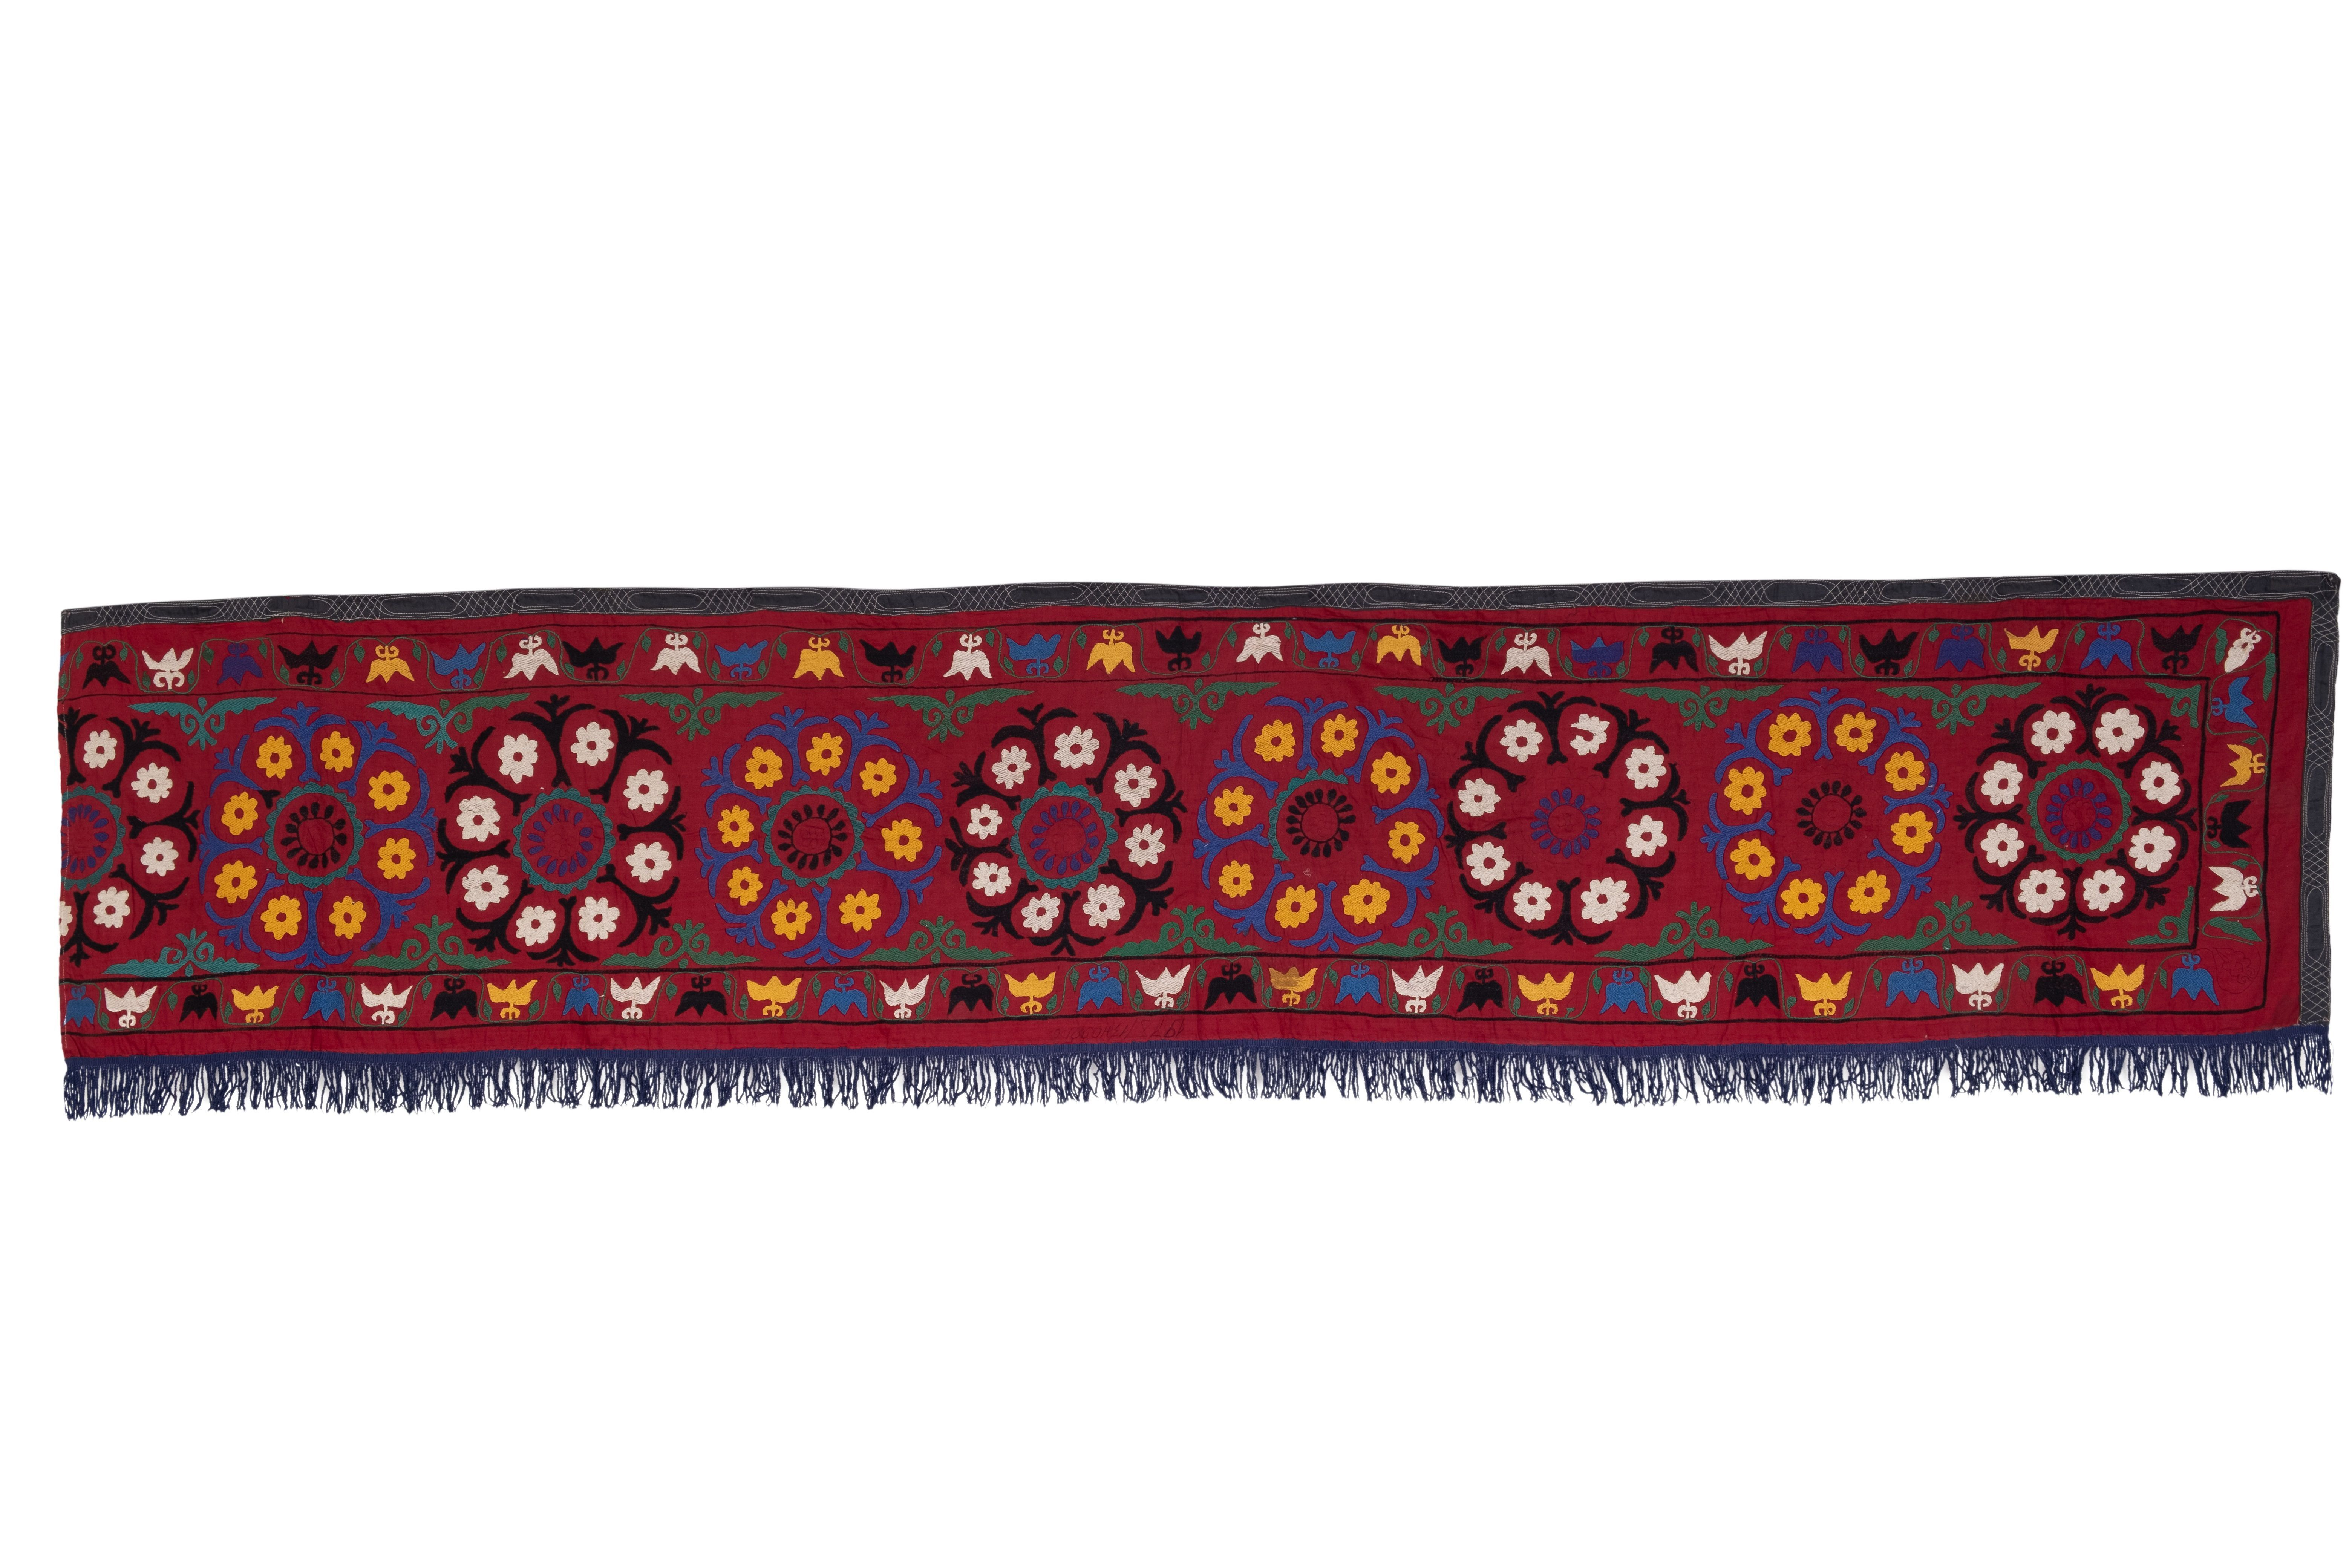 Vintage Embroidered Floral Suzani Table Runner / Wall Hanging 1'10 x 9'7'  #tribal #rug #turkishkilim #antiqueshow #woolrug #turkishrug #antiquerug #tribal #turkish #freeshipping #kilimpillow #cushioncovers #unique #oneofakind #kilim #collectibles #antique #freeshipping #designers #embroidery #alamedaflea #wallhanging #freedelivery #alameda #vintage #cecim #suzani #bazaar #flea #quality #suzani